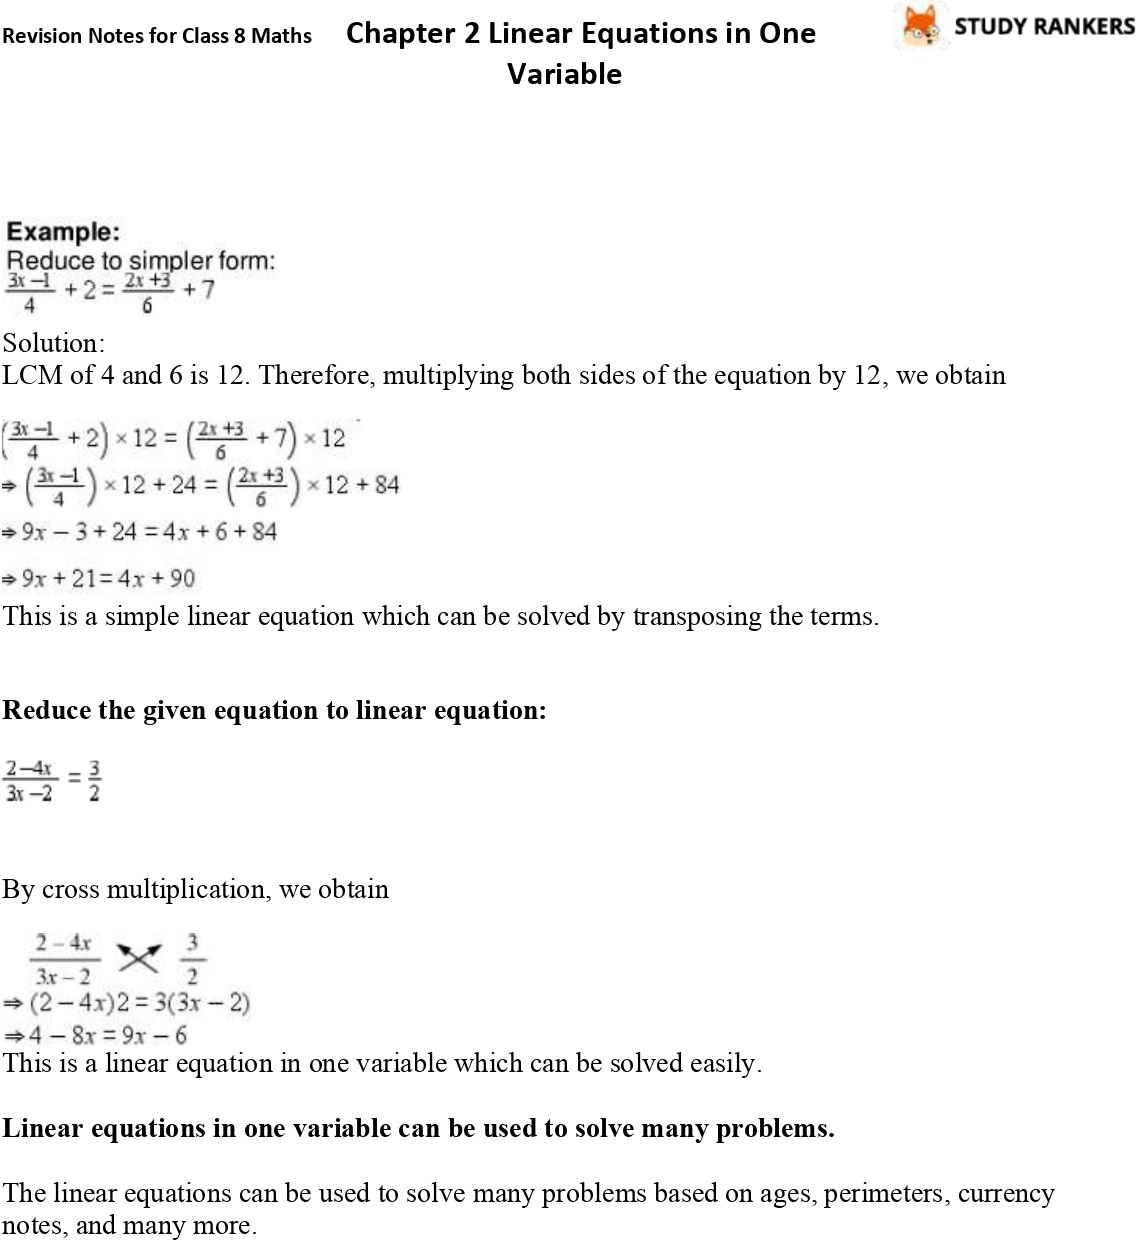 CBSE Revision Notes for Class 8 Chapter 2 Linear Equations in One Variable Part 2